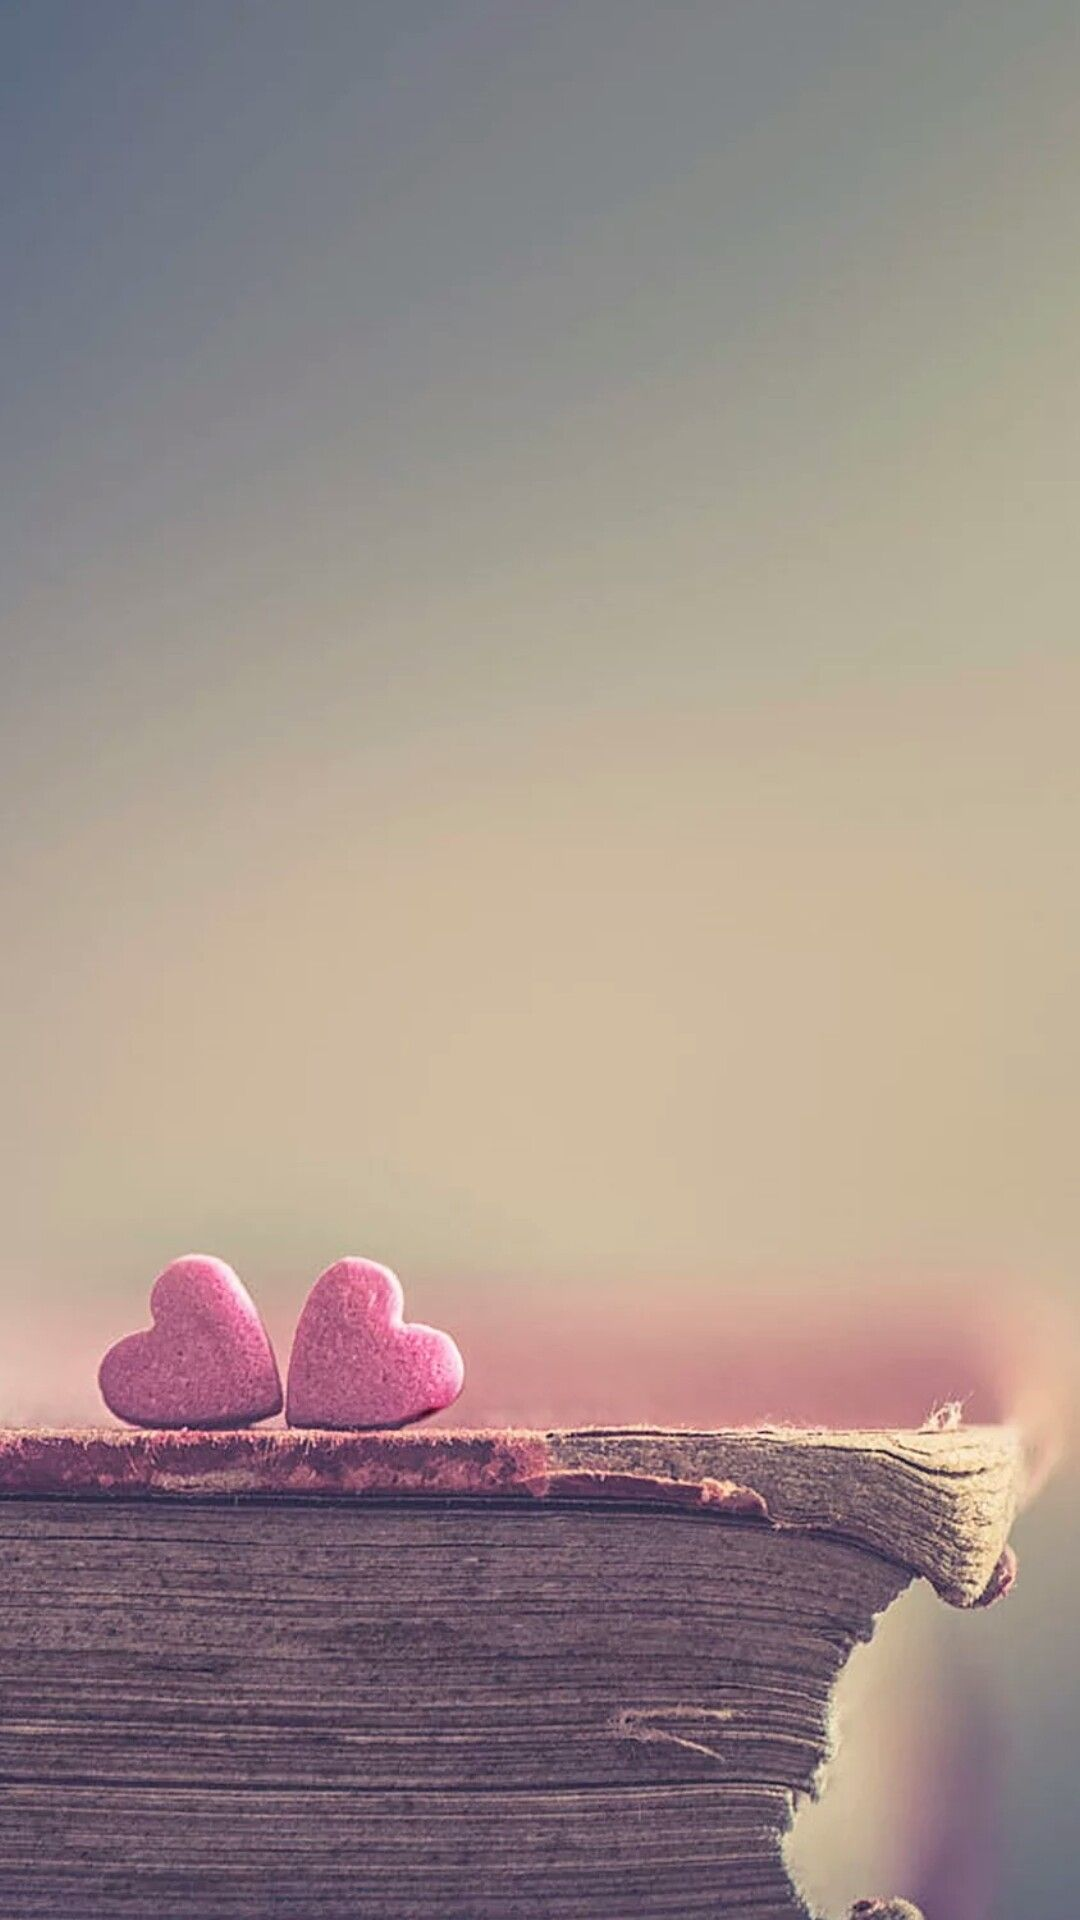 Awesome Cute Wallpapers For Android Pin By Nena On Hearts Background Vintage Love Wallpaper